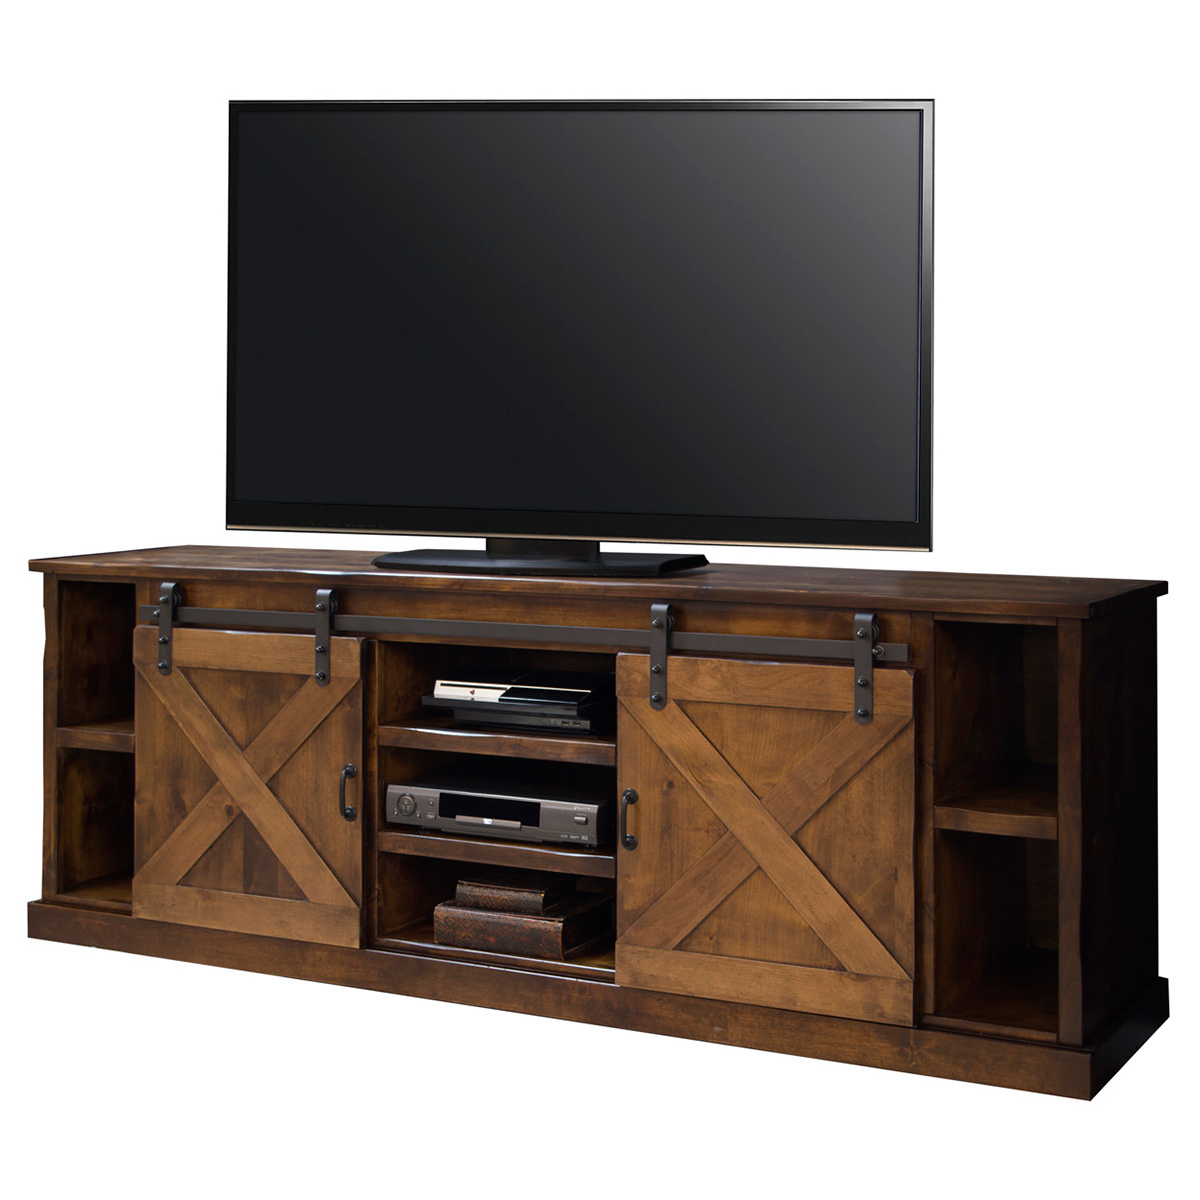 80 Inch Tv Stand Best Buy Long Low Media Extra Cabinet 70 Fireplace With Regard To Most Recent 80 Inch Tv Stands (Gallery 10 of 20)